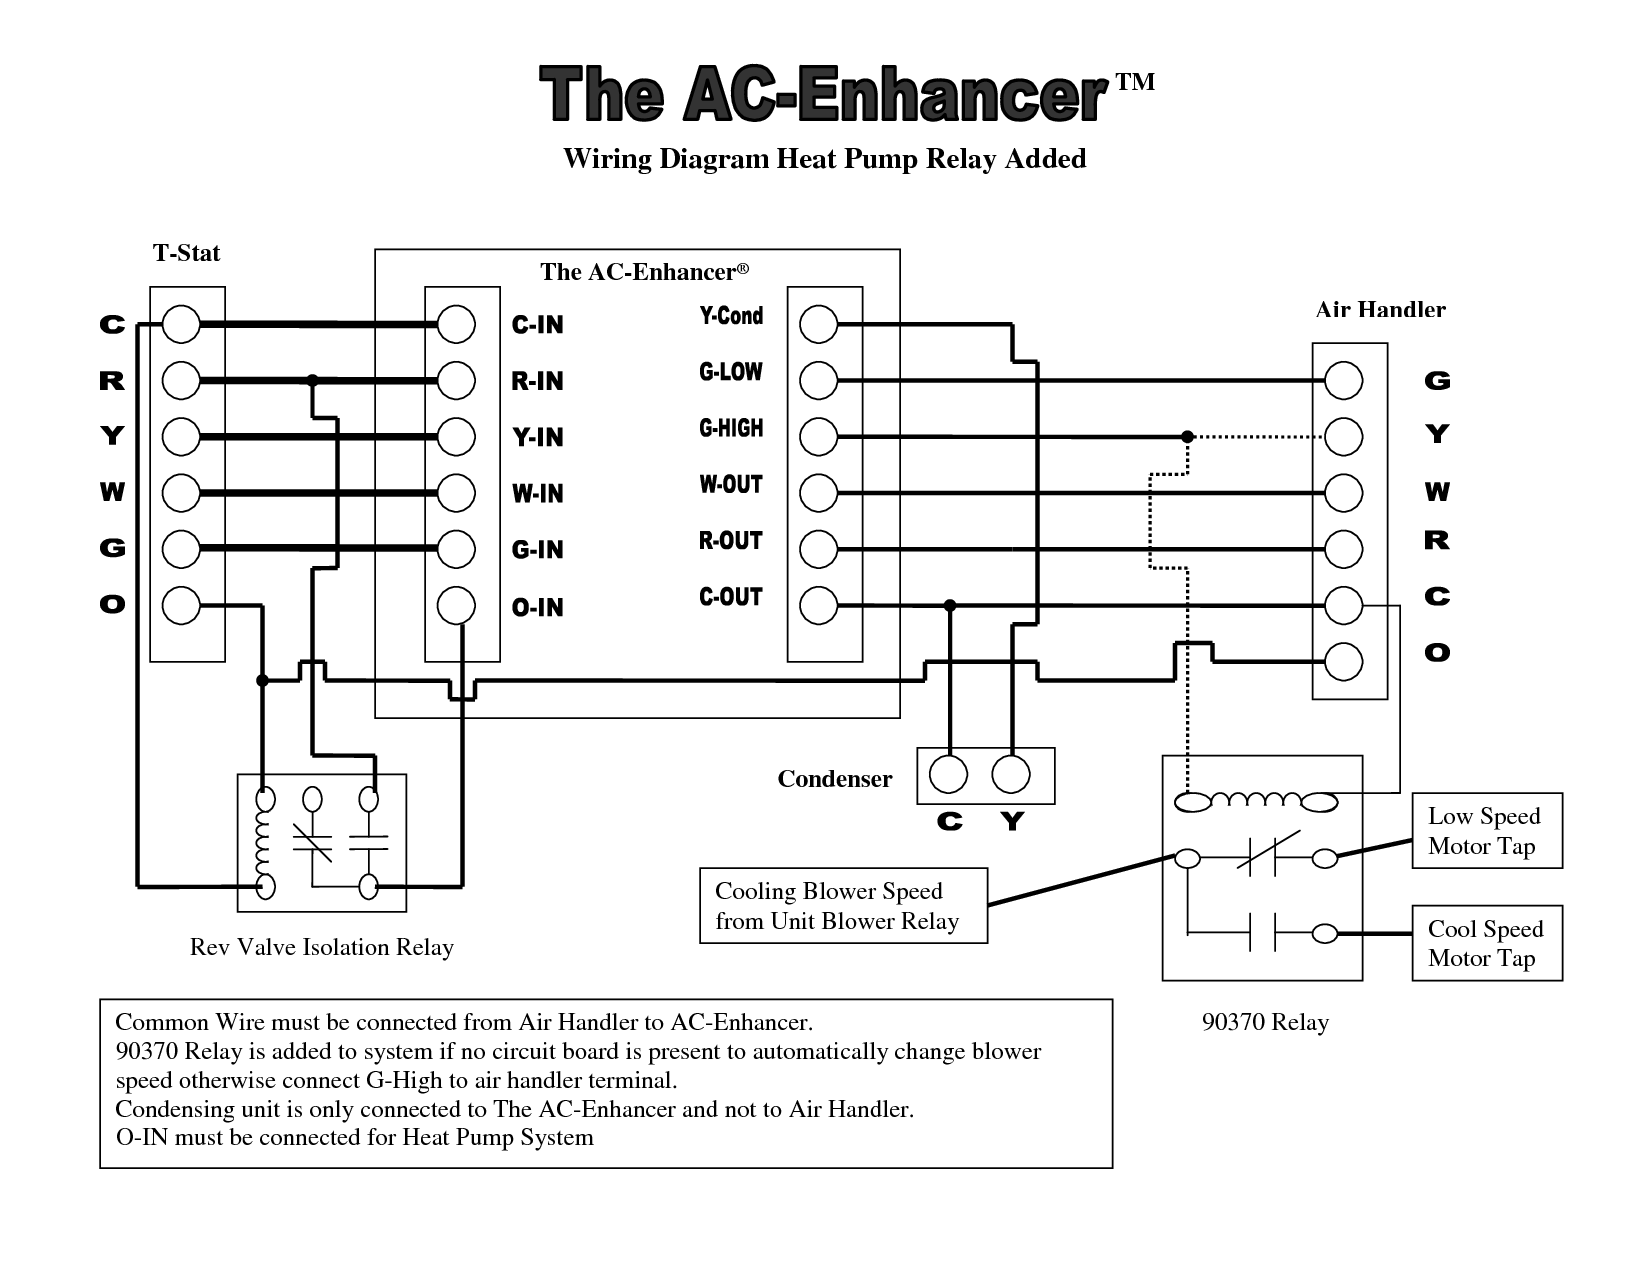 5a0e10d9c7d3fced962dfa588f6c0c31 hvac wiring diagram www automanualparts com hvac wiring hvac wiring diagram at crackthecode.co